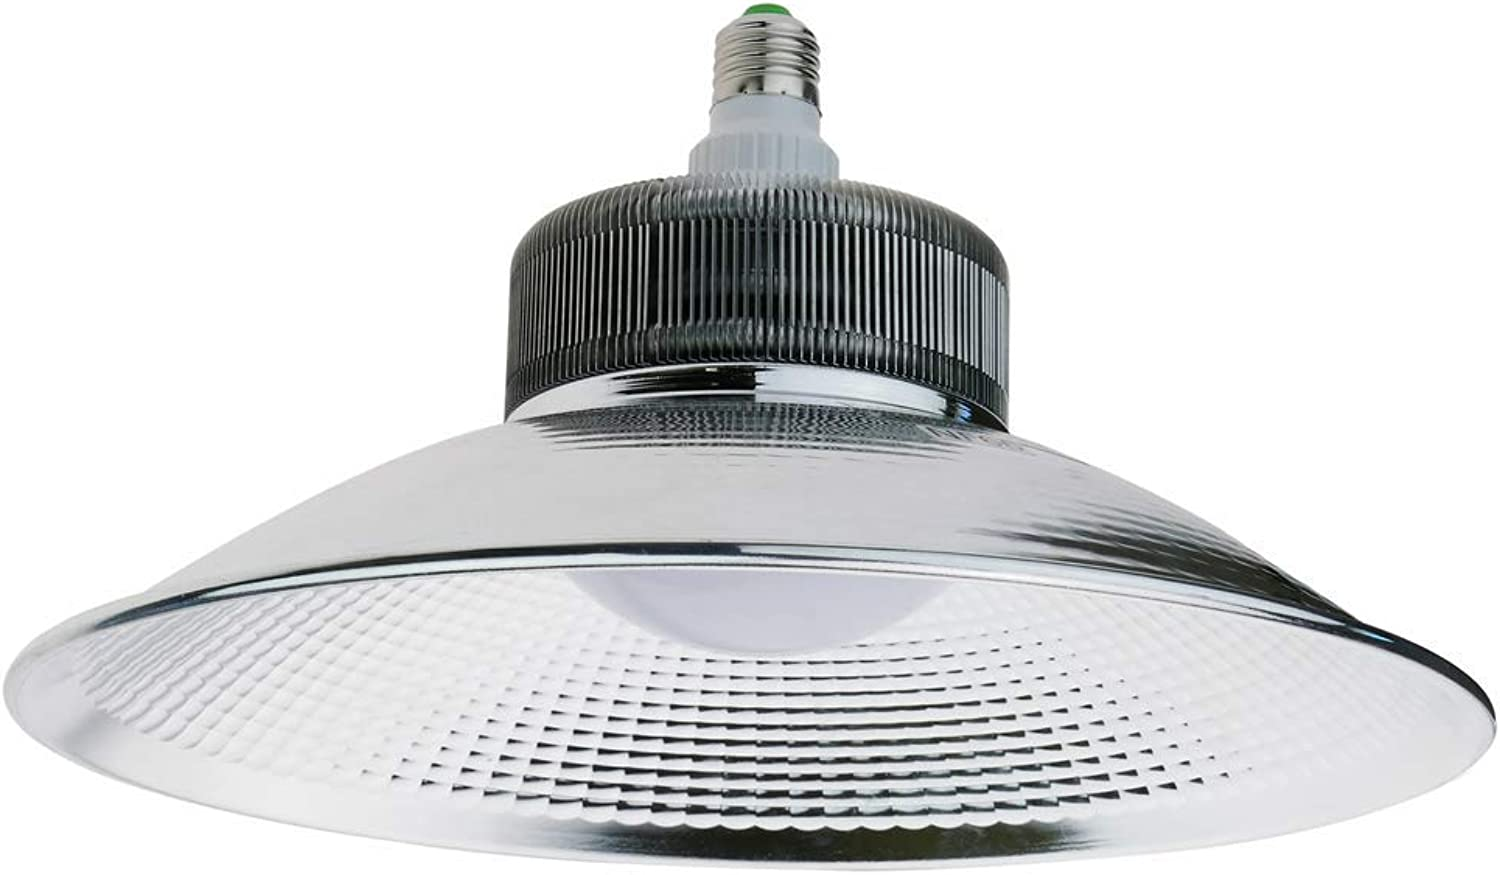 Cablematic–Produkttyp Lampe Leuchtmittel LED E2740W 85–265VAC 6000K wei rot